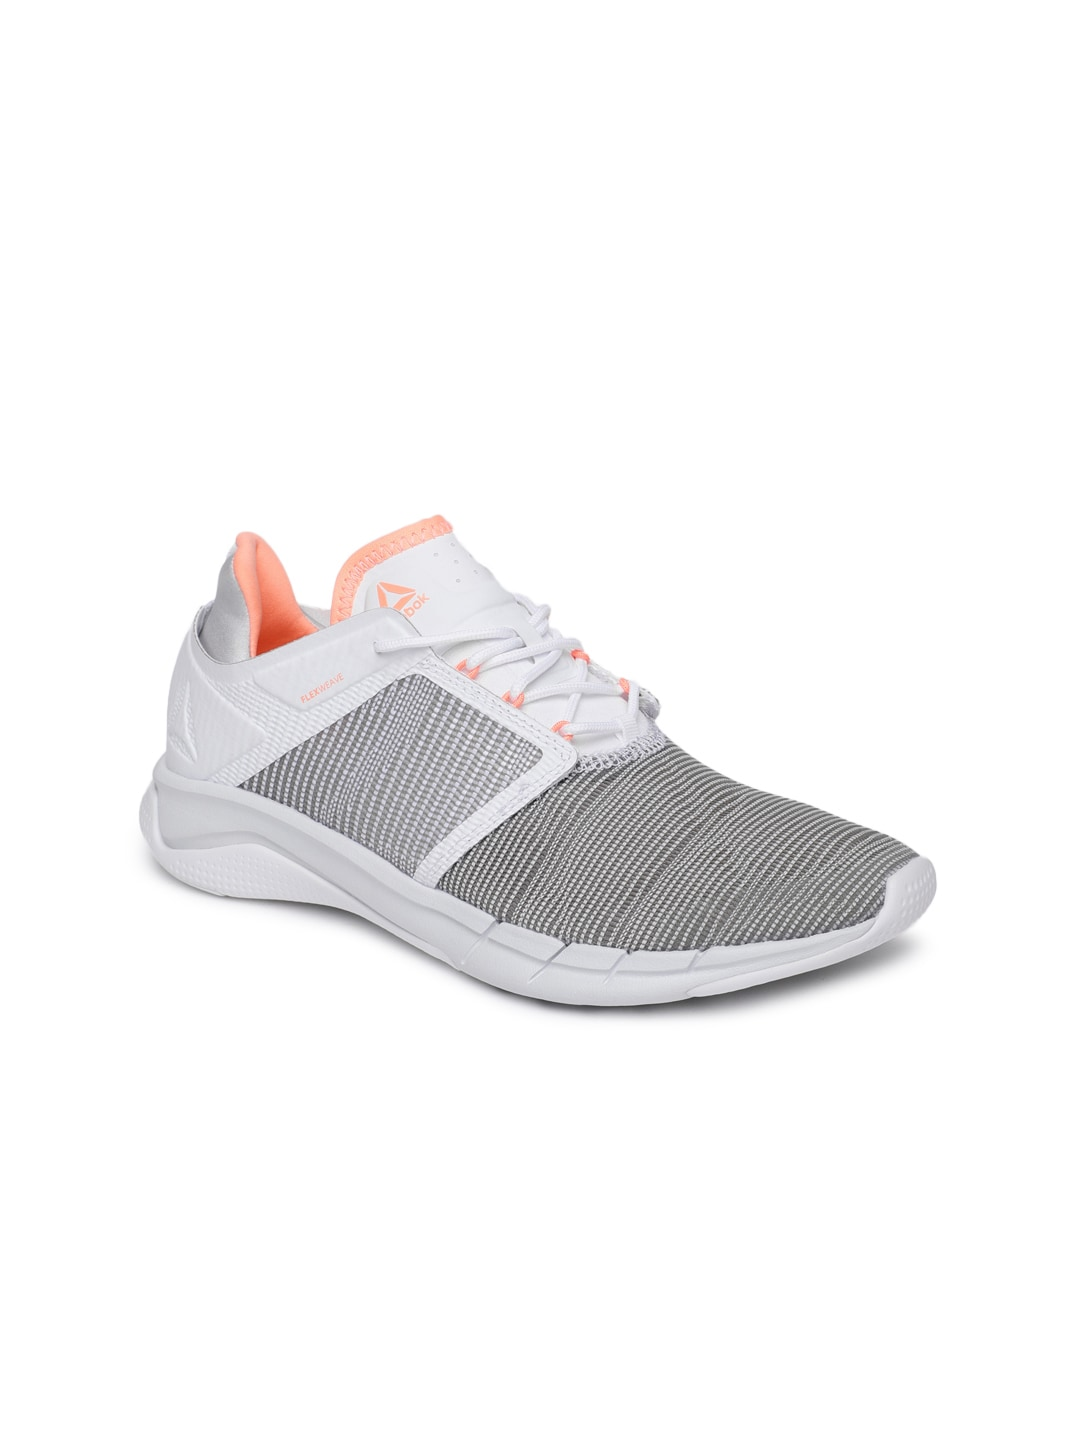 Reebok For Women - Buy Reebok For Women online in India ed2a0014c